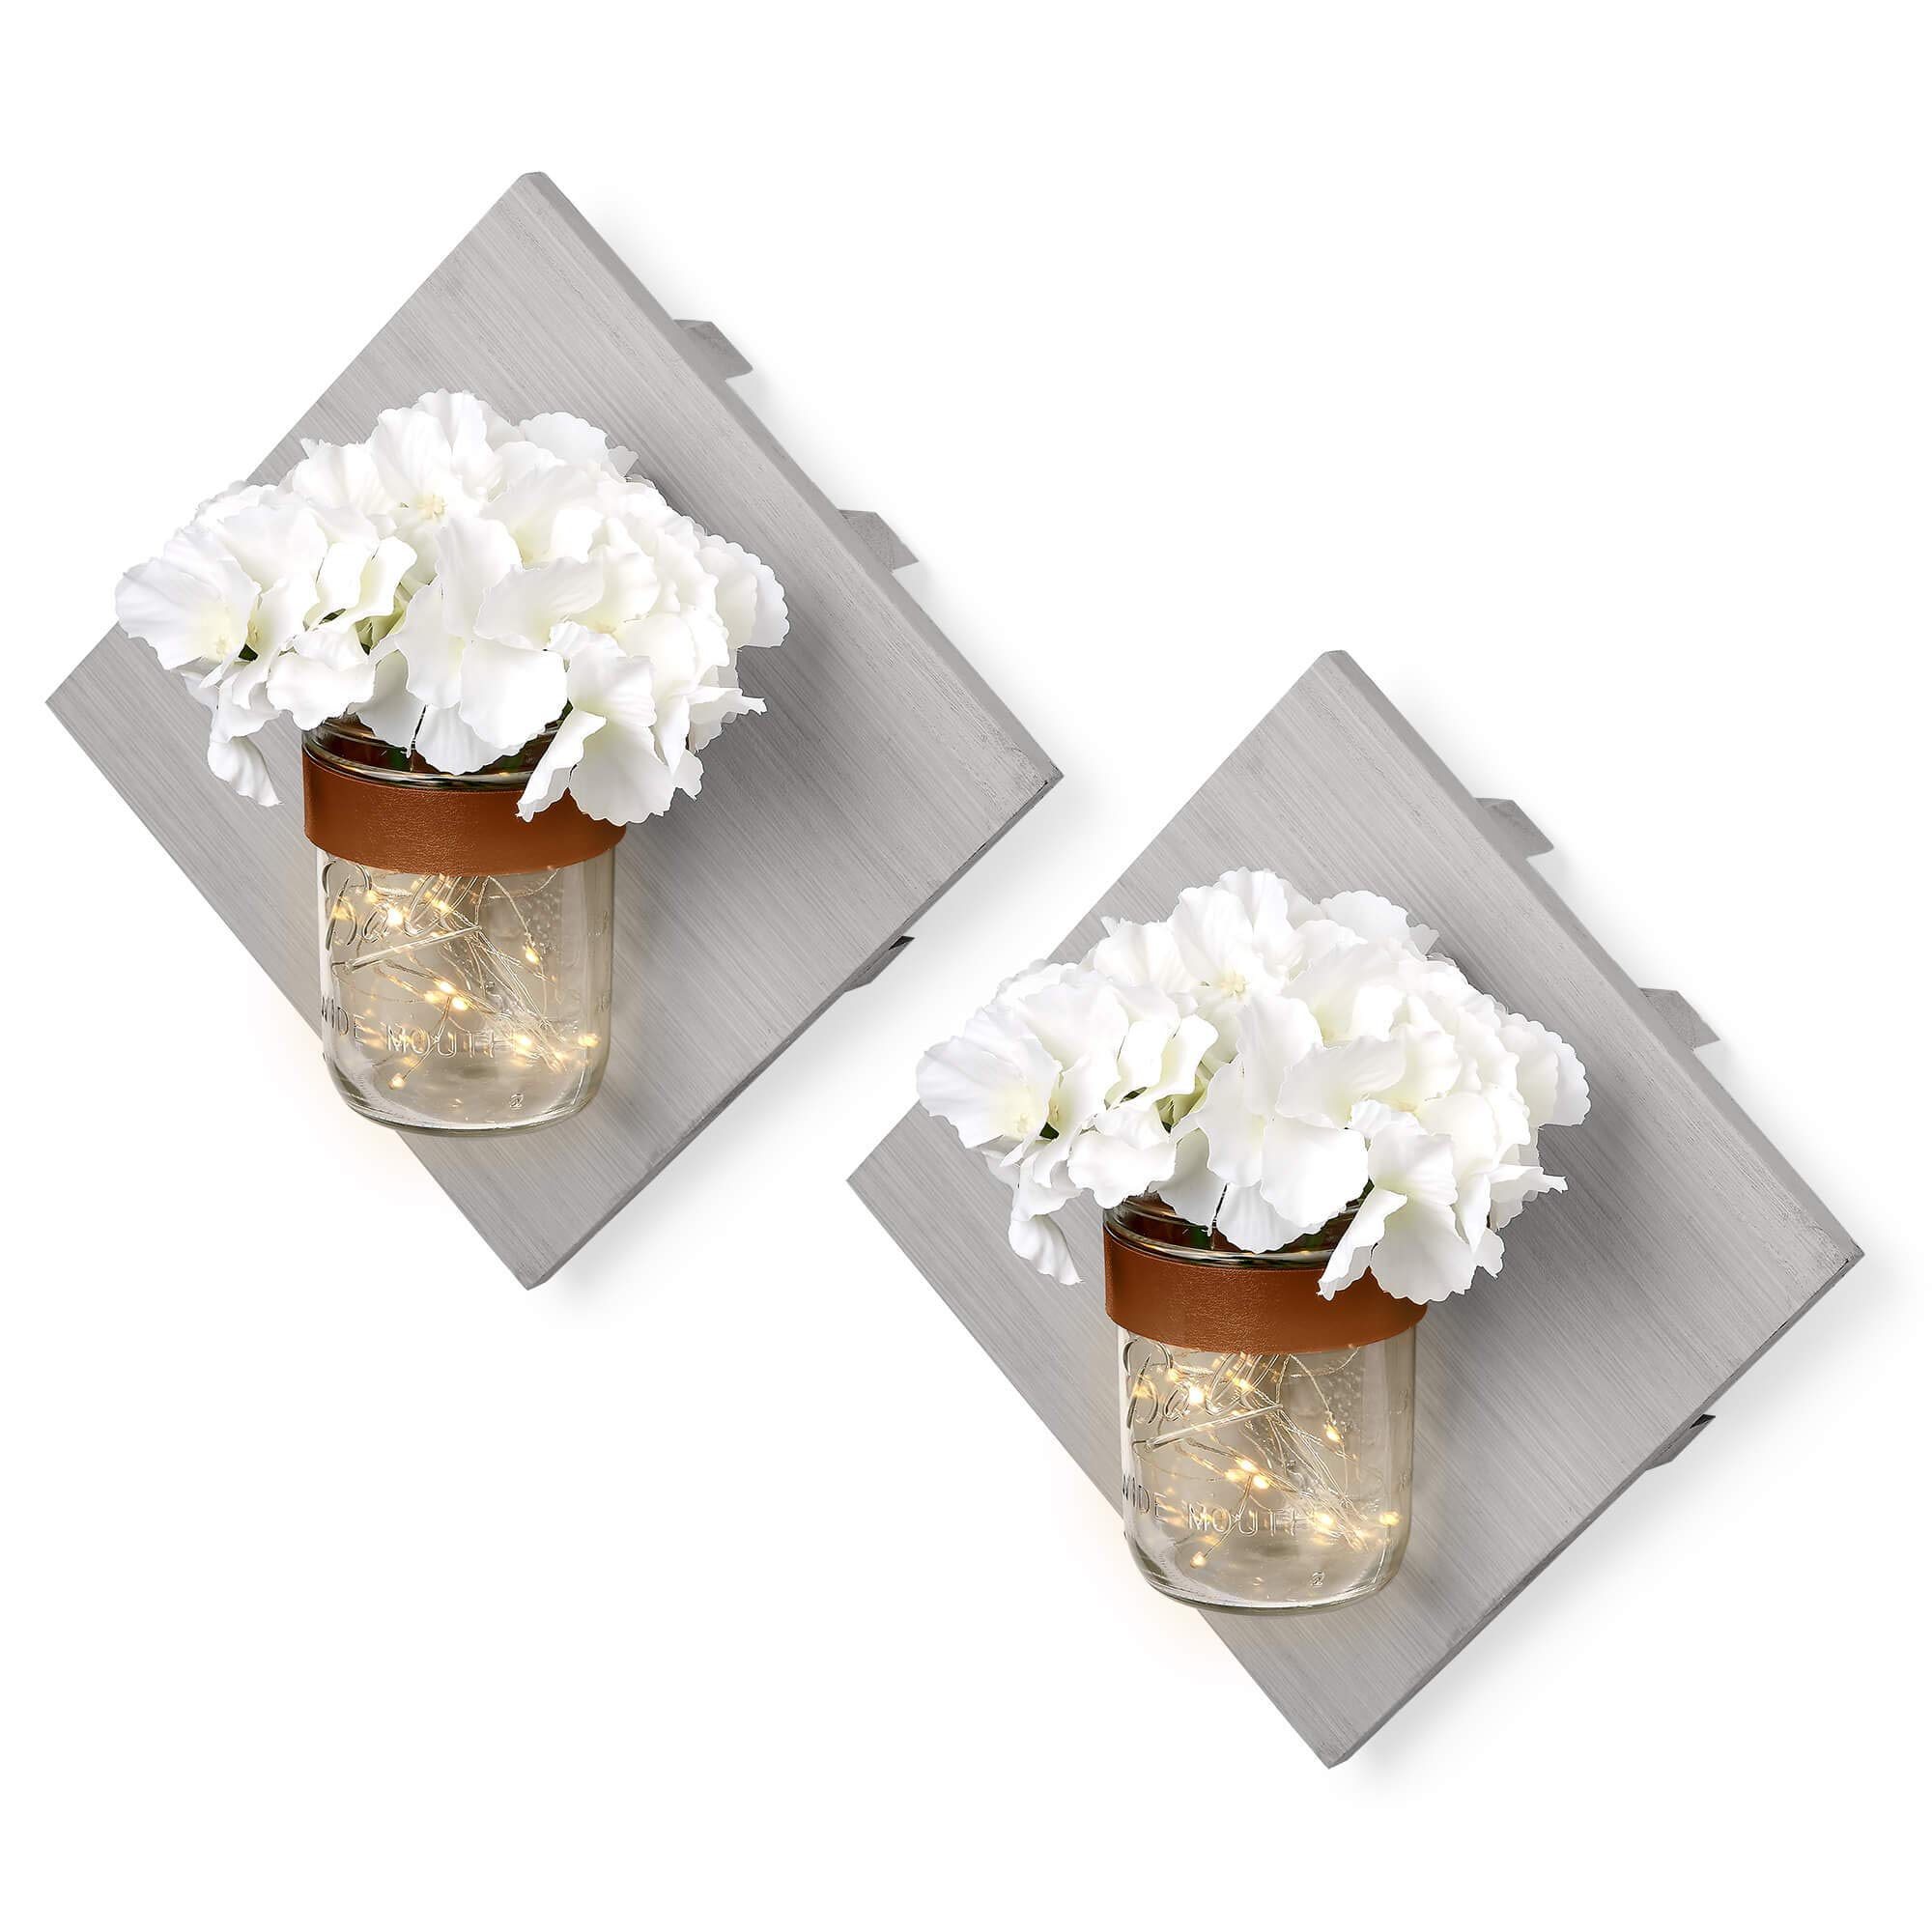 ArtsyCrafts Rustic Wood Mason Jar Wall Sconces Set of Two Grey - Includes Hydrangea Flower & LED Fairy Lights for A Warm Farmhouse Decoration. Enhance Your Home, Kitchen, Bathroom and Bedroom Decor by Arsty Crafts